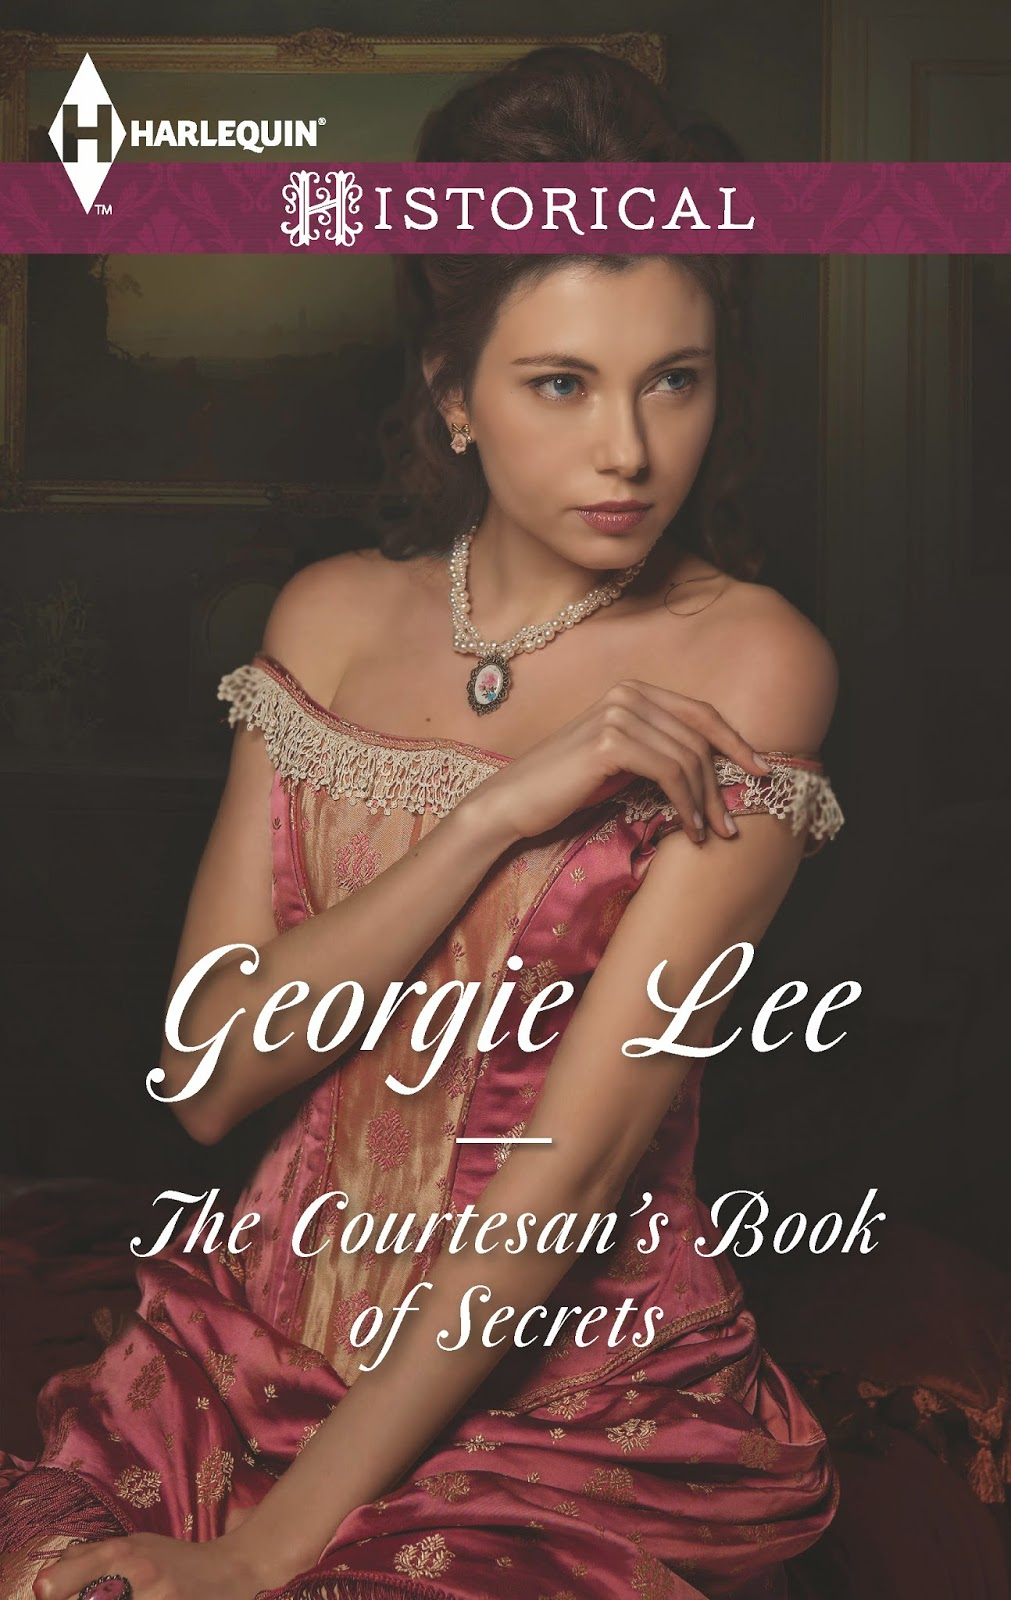 The Courtesan's Book of Secrets